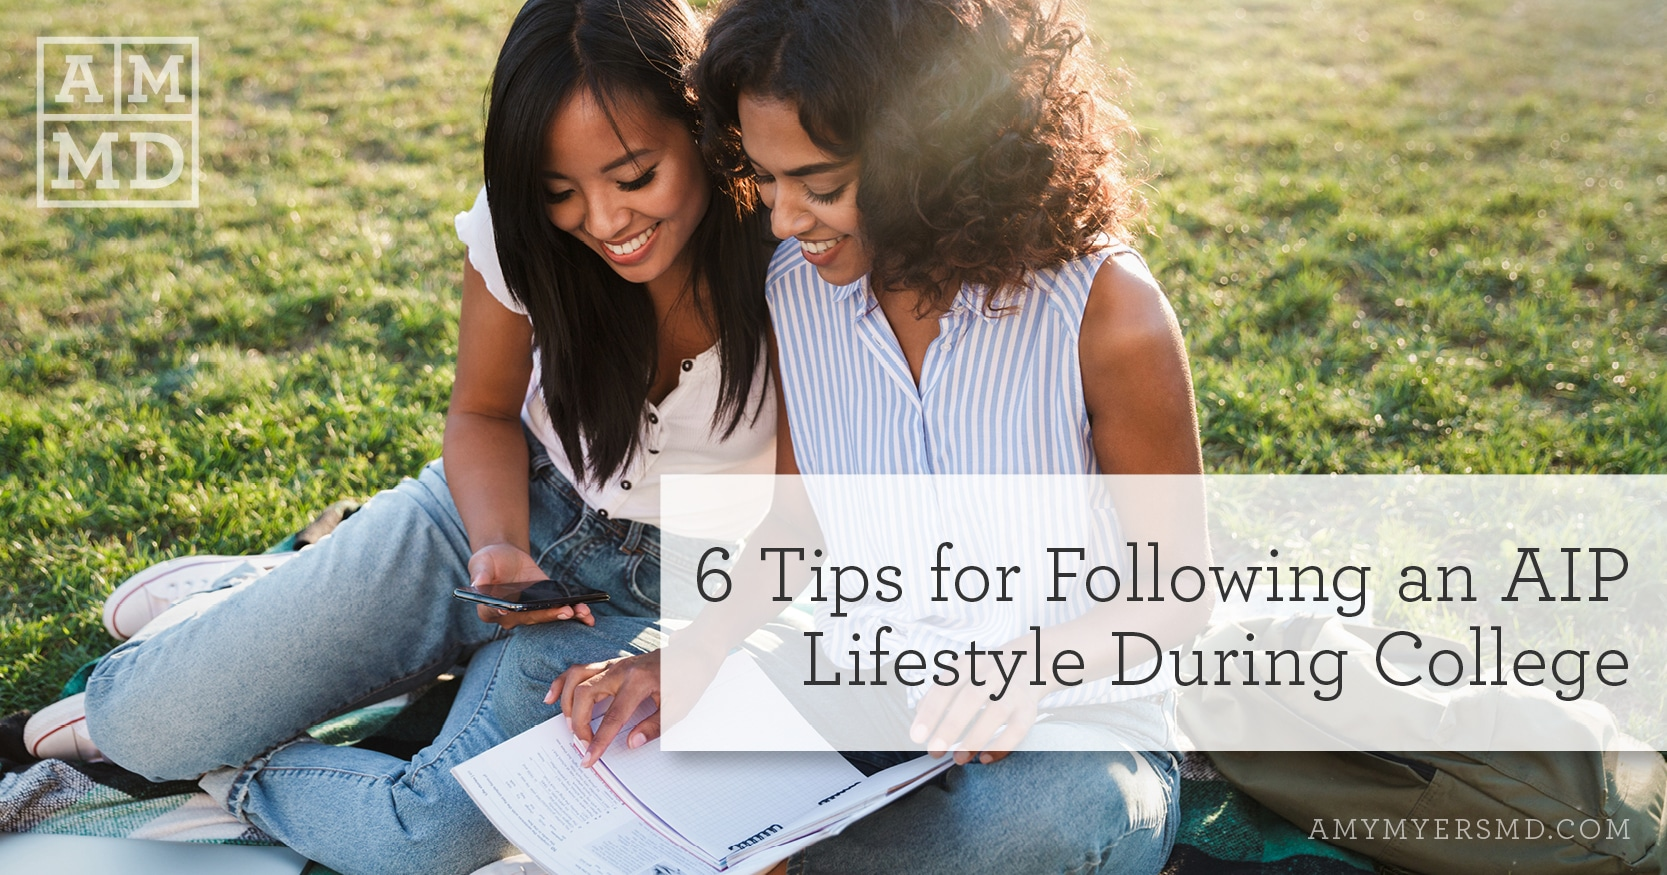 6 Tips for Following an AIP Lifestyle During College - Two Women Studying Together - Featured Image - Amy Myers MD